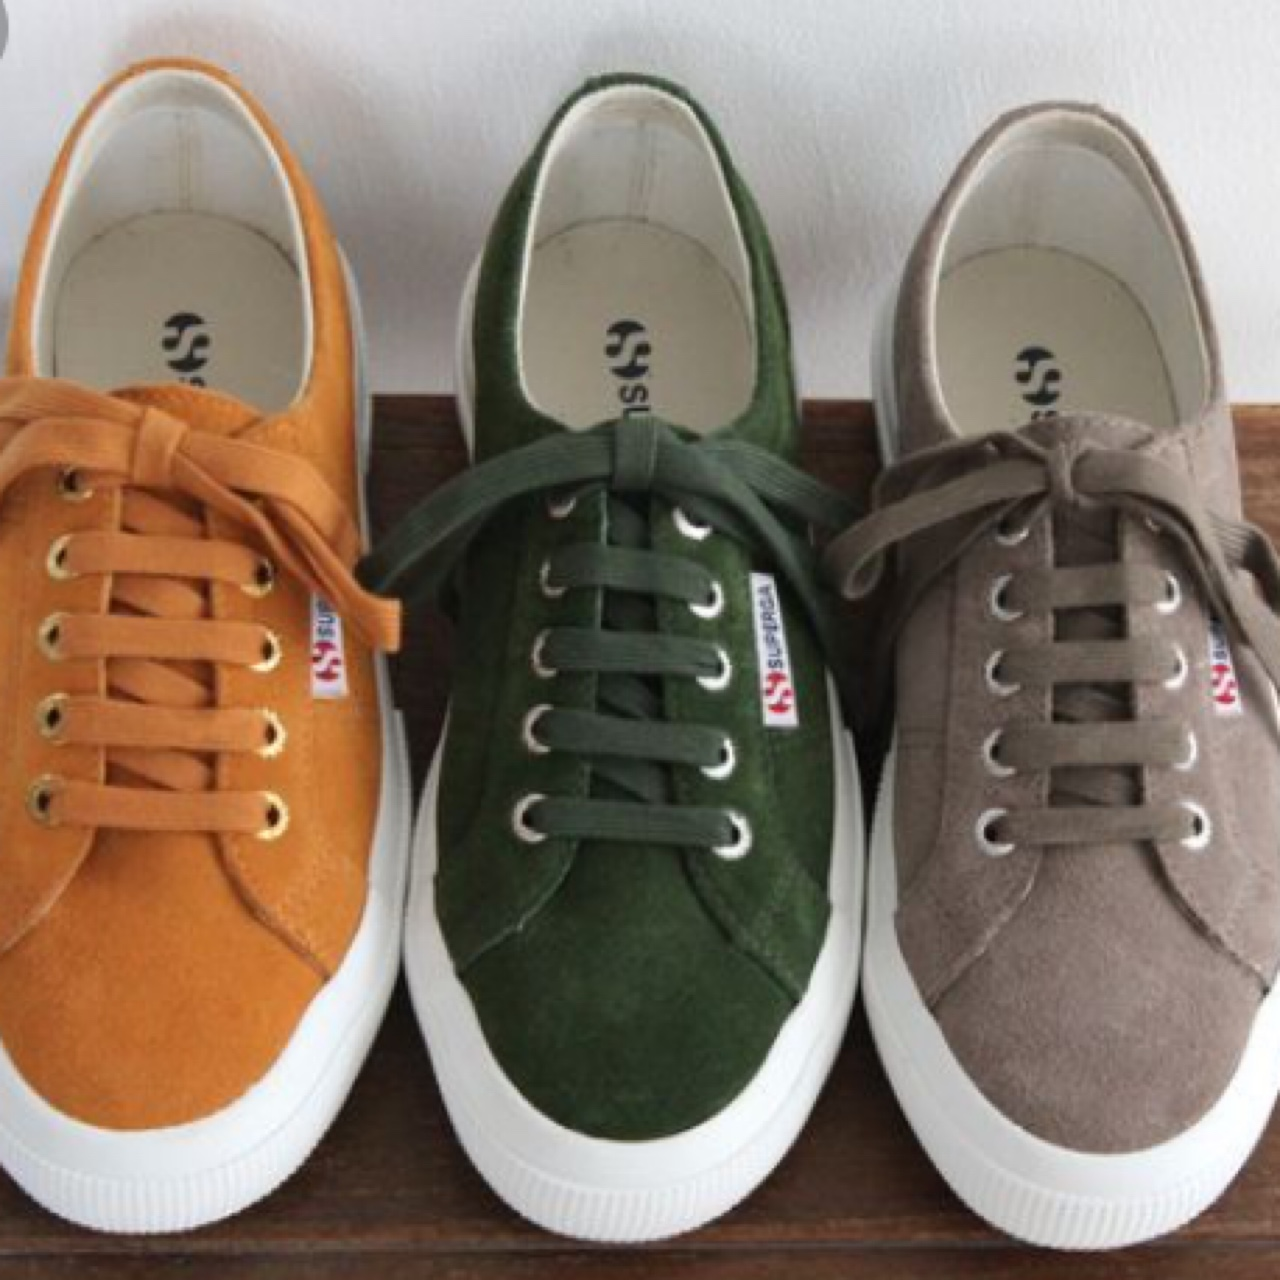 Suede Superga in SAND colour. As you